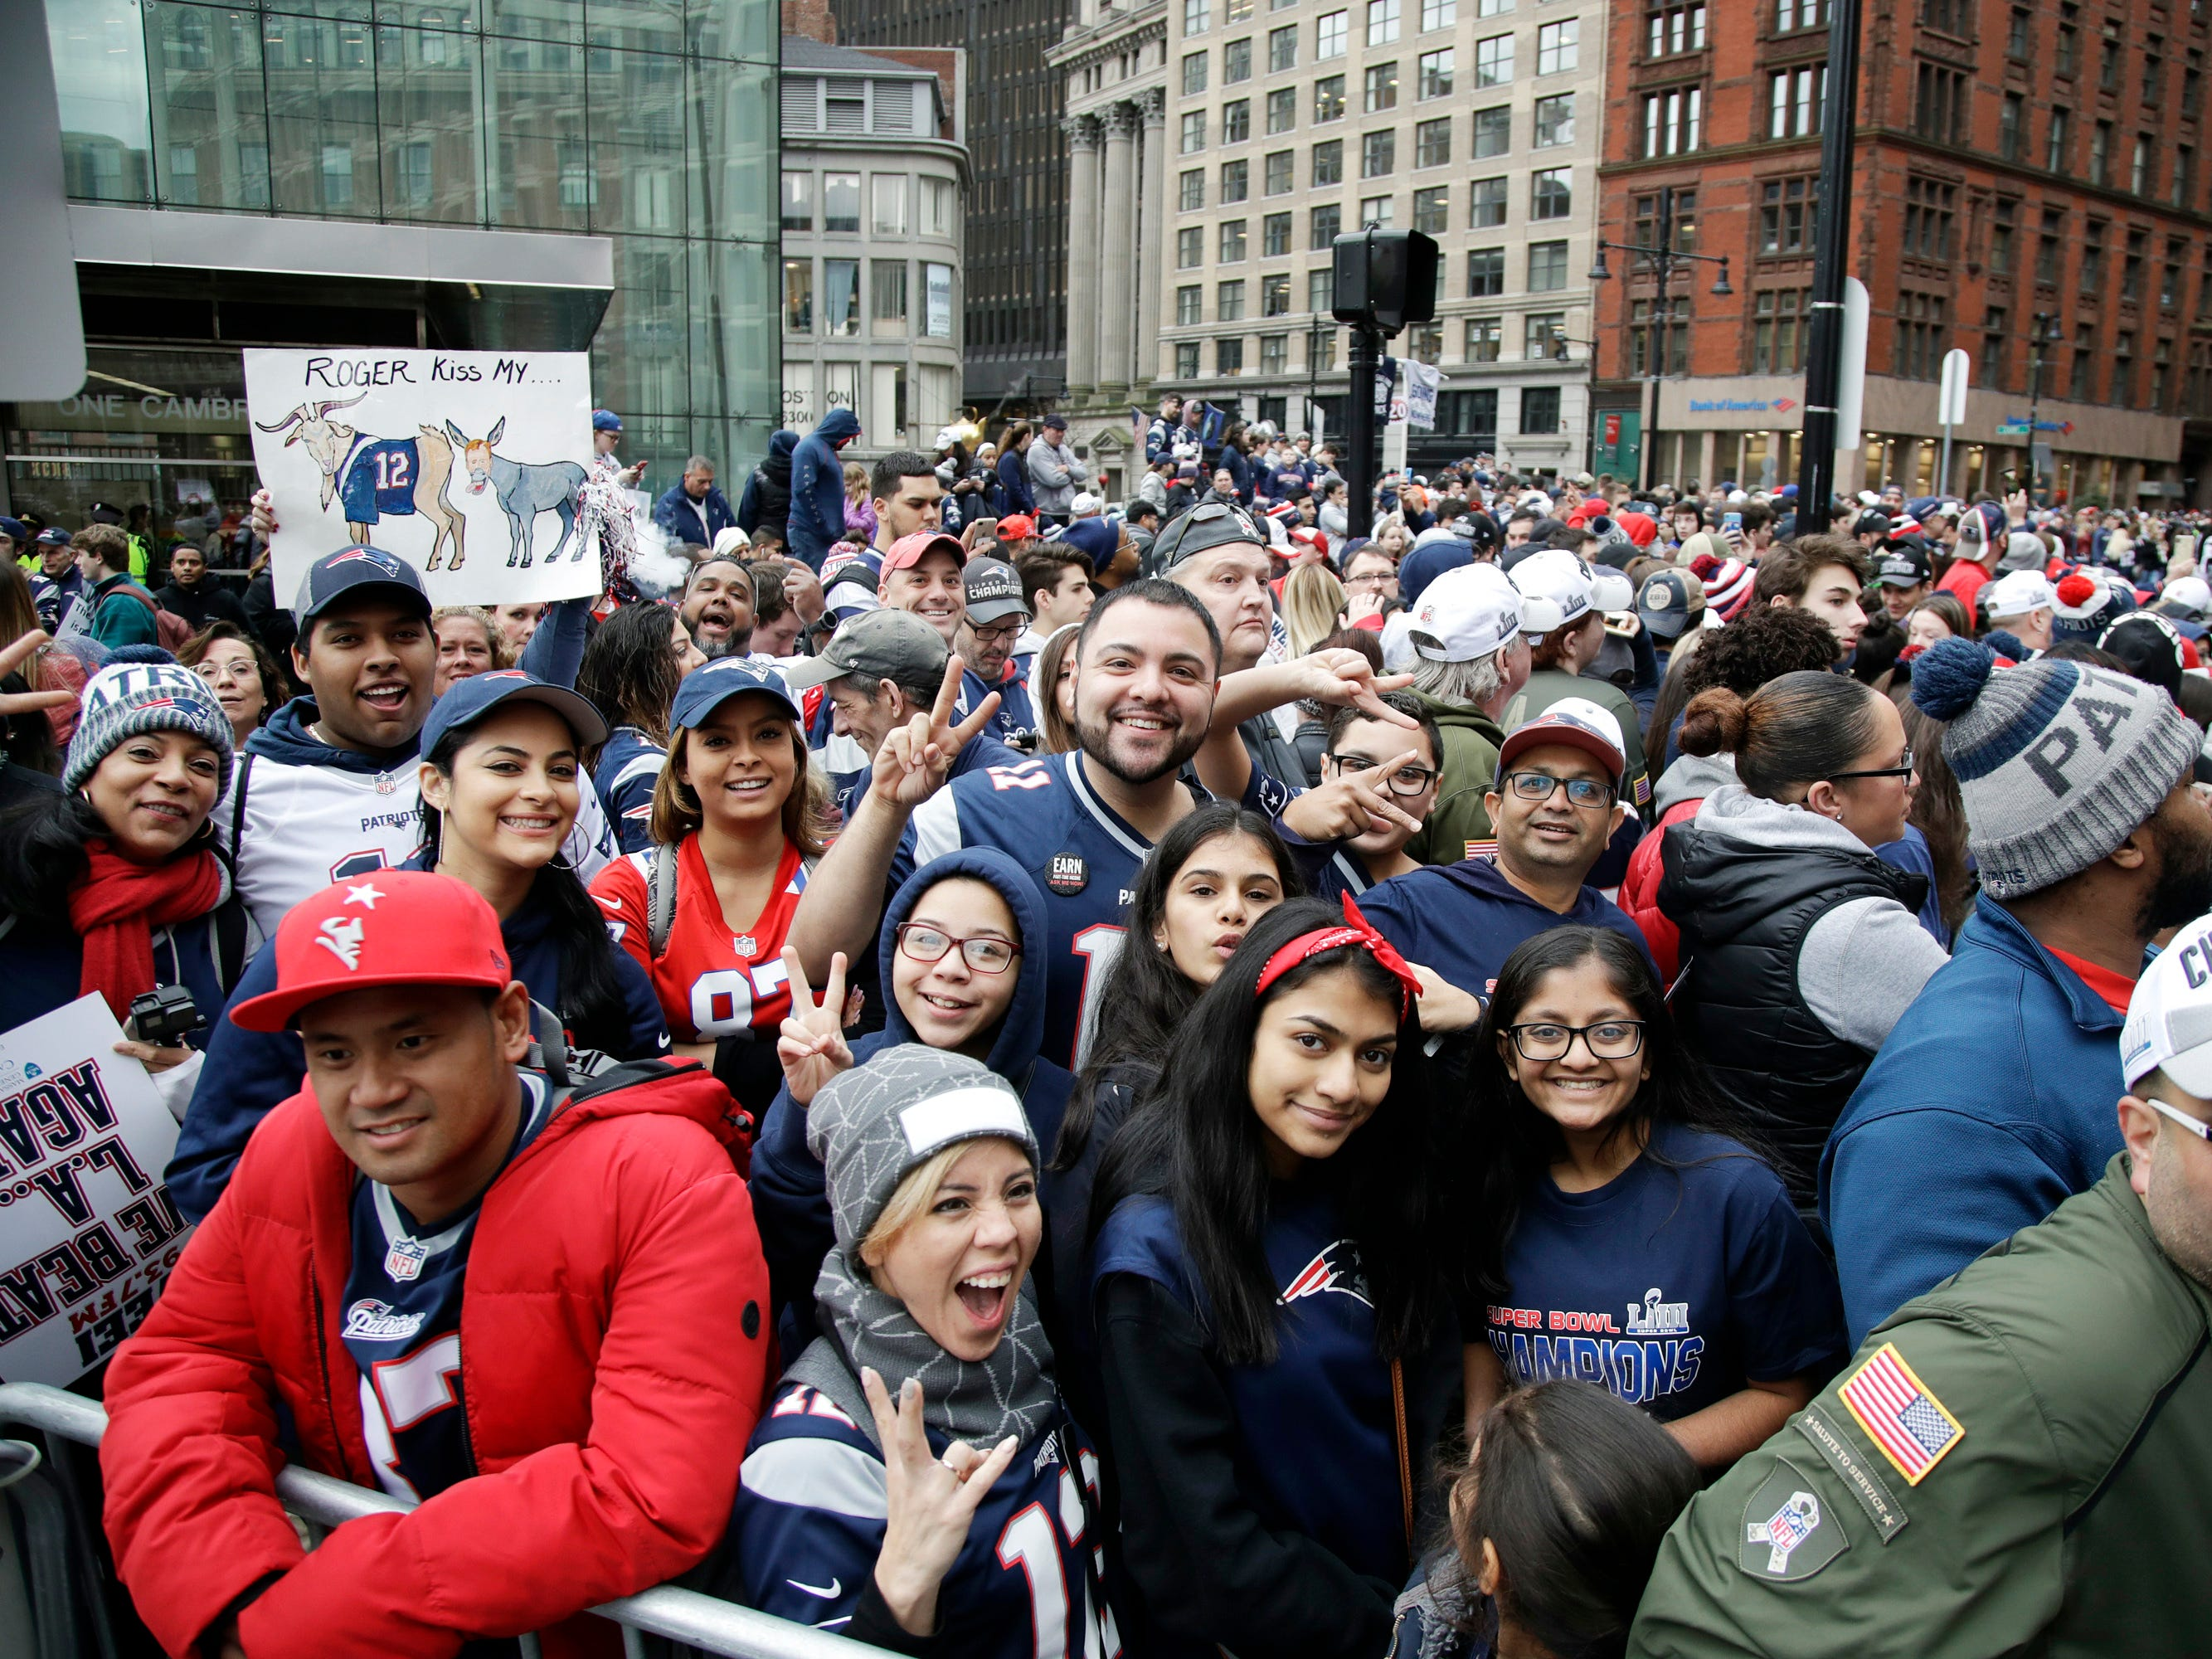 Fans gather near Boston City Hall to watch the New England Patriots football team victory parade through the streets of Boston to celebrate their win over the Los Angeles Rams for their sixth NFL Super Bowl championship. (AP Photo/Elise Amendola)